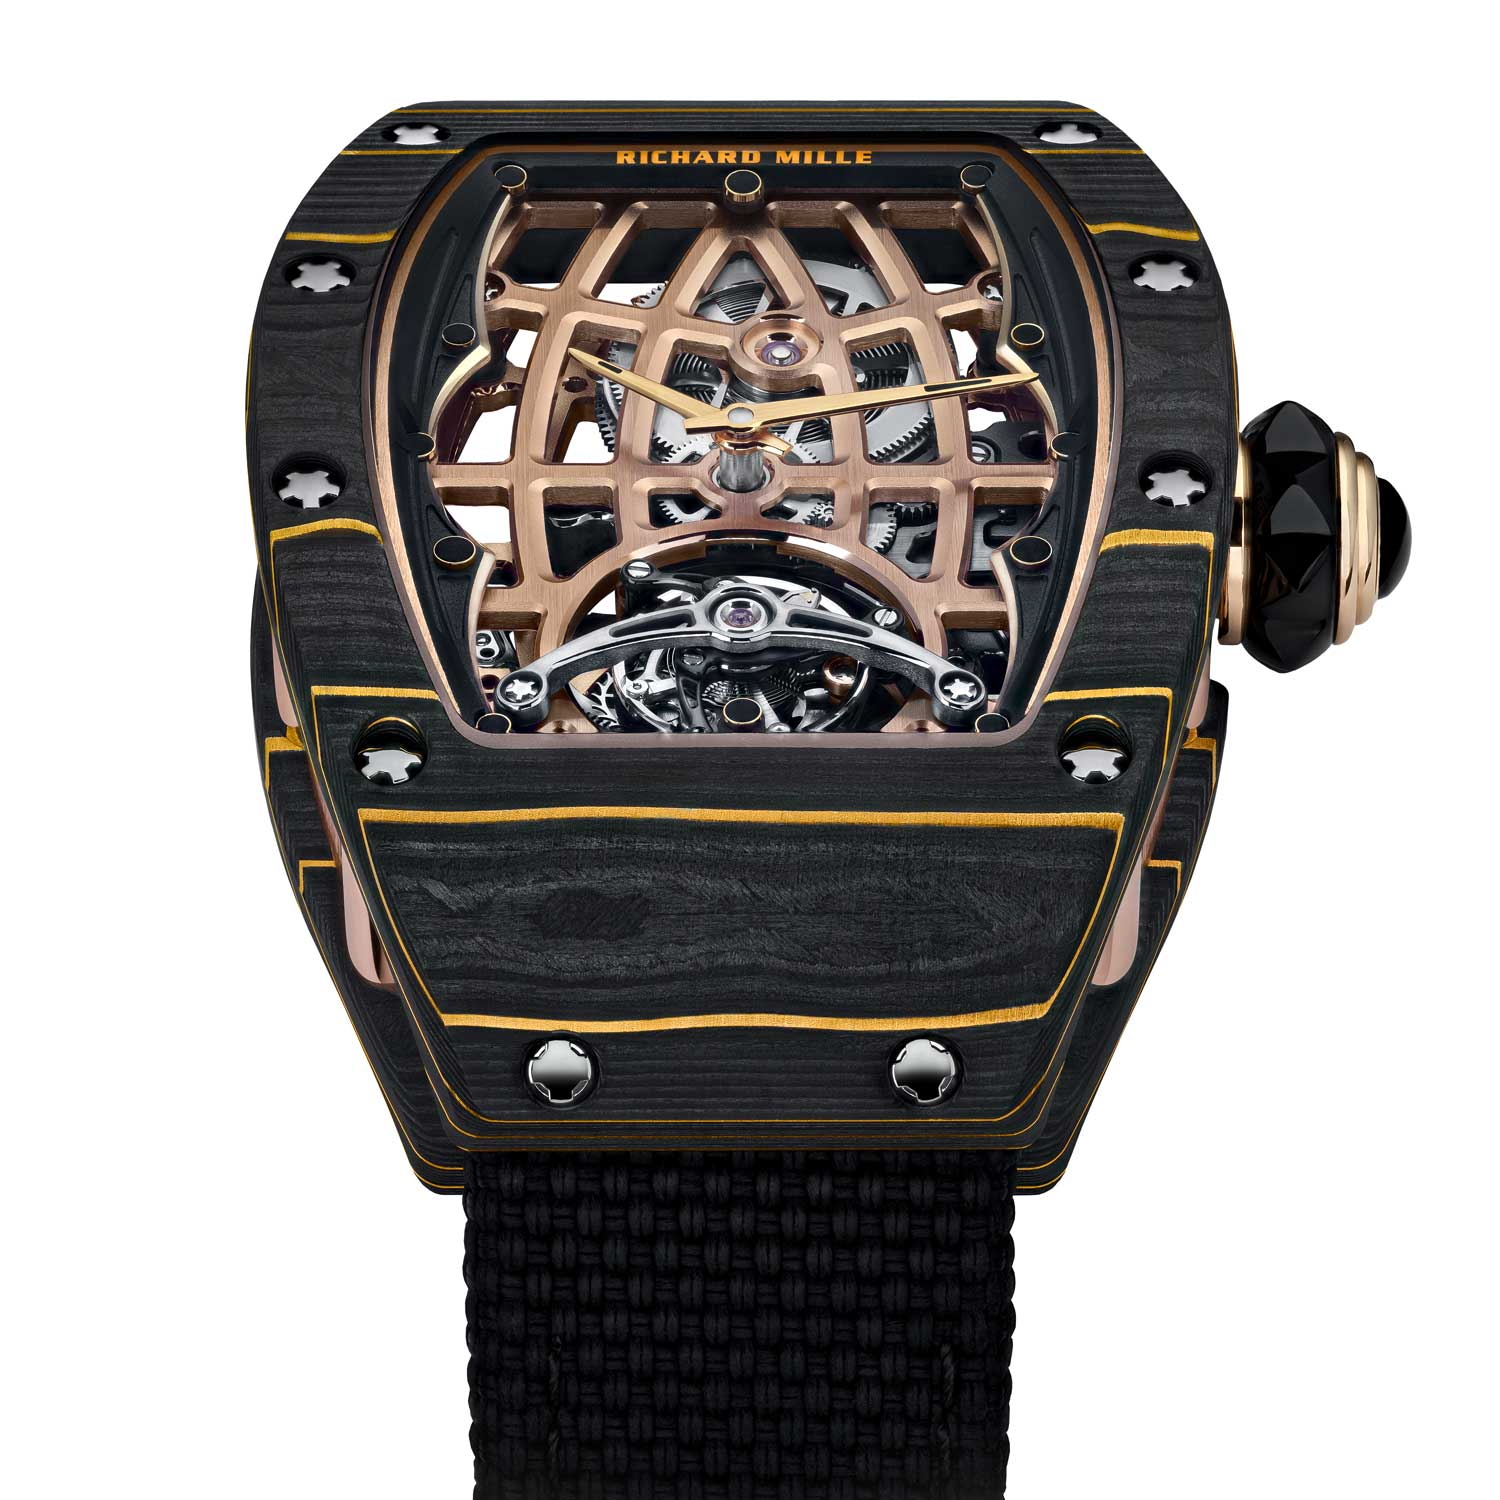 The RM 74-02 uses variable geometry to optimise the rotor's winding motion